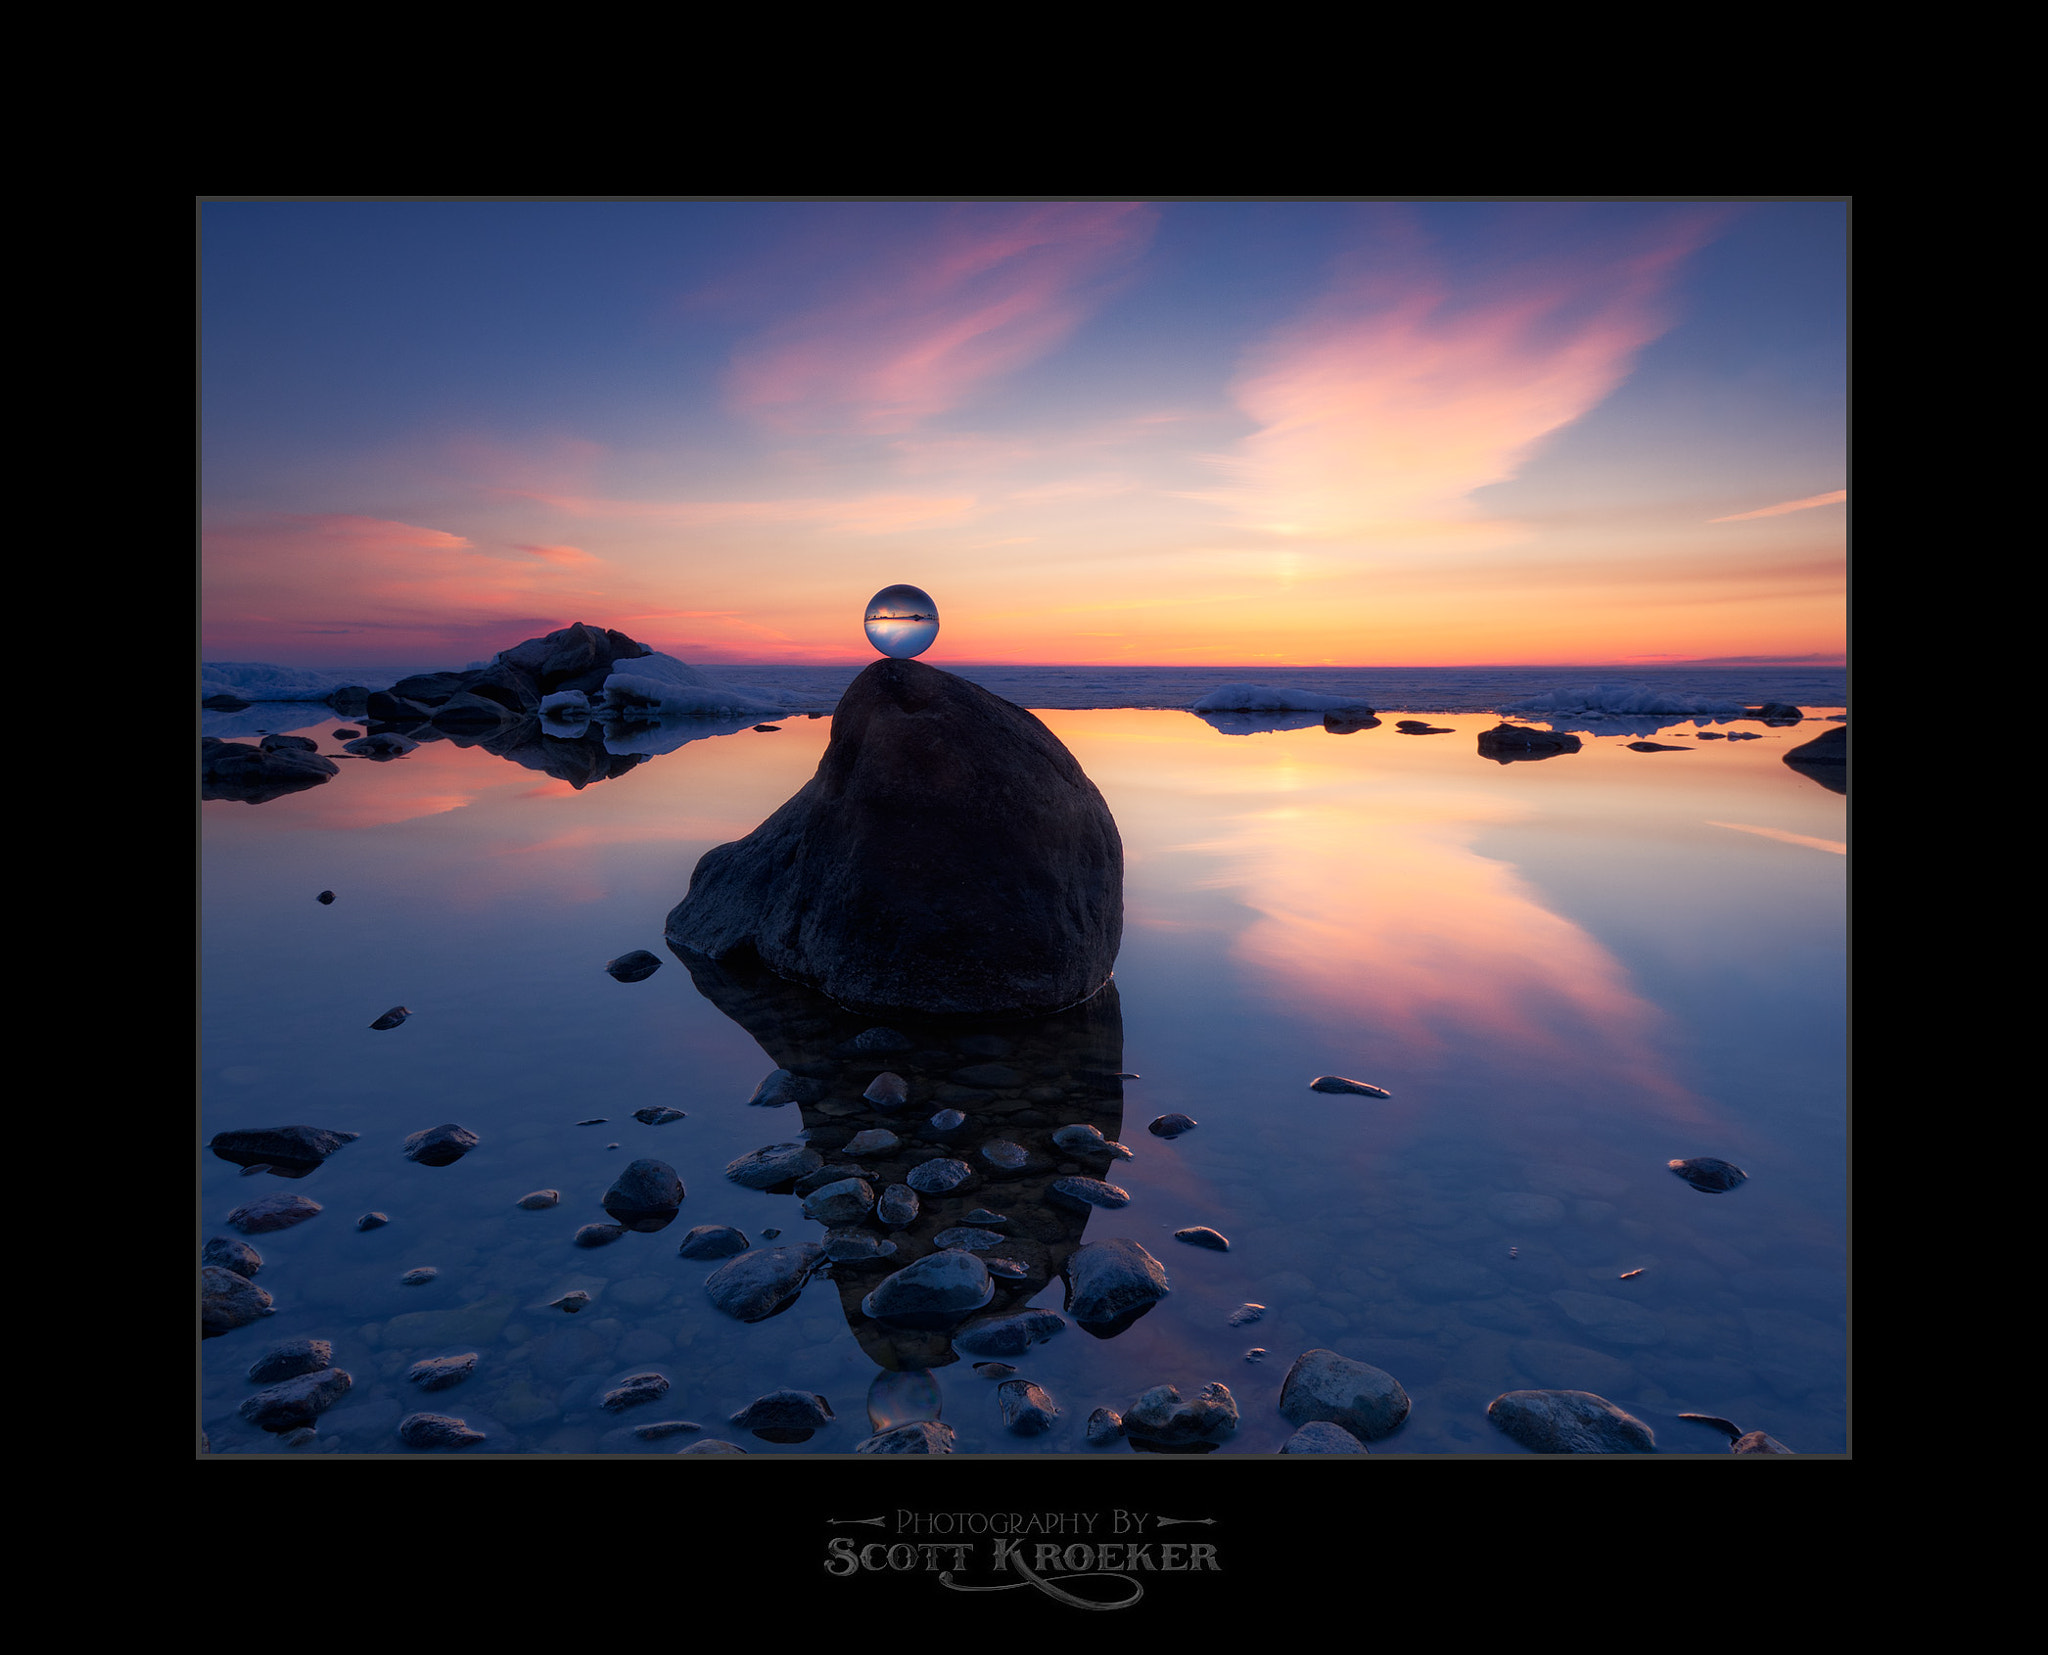 Photograph Point Of Conciousness by Scott Kroeker on 500px